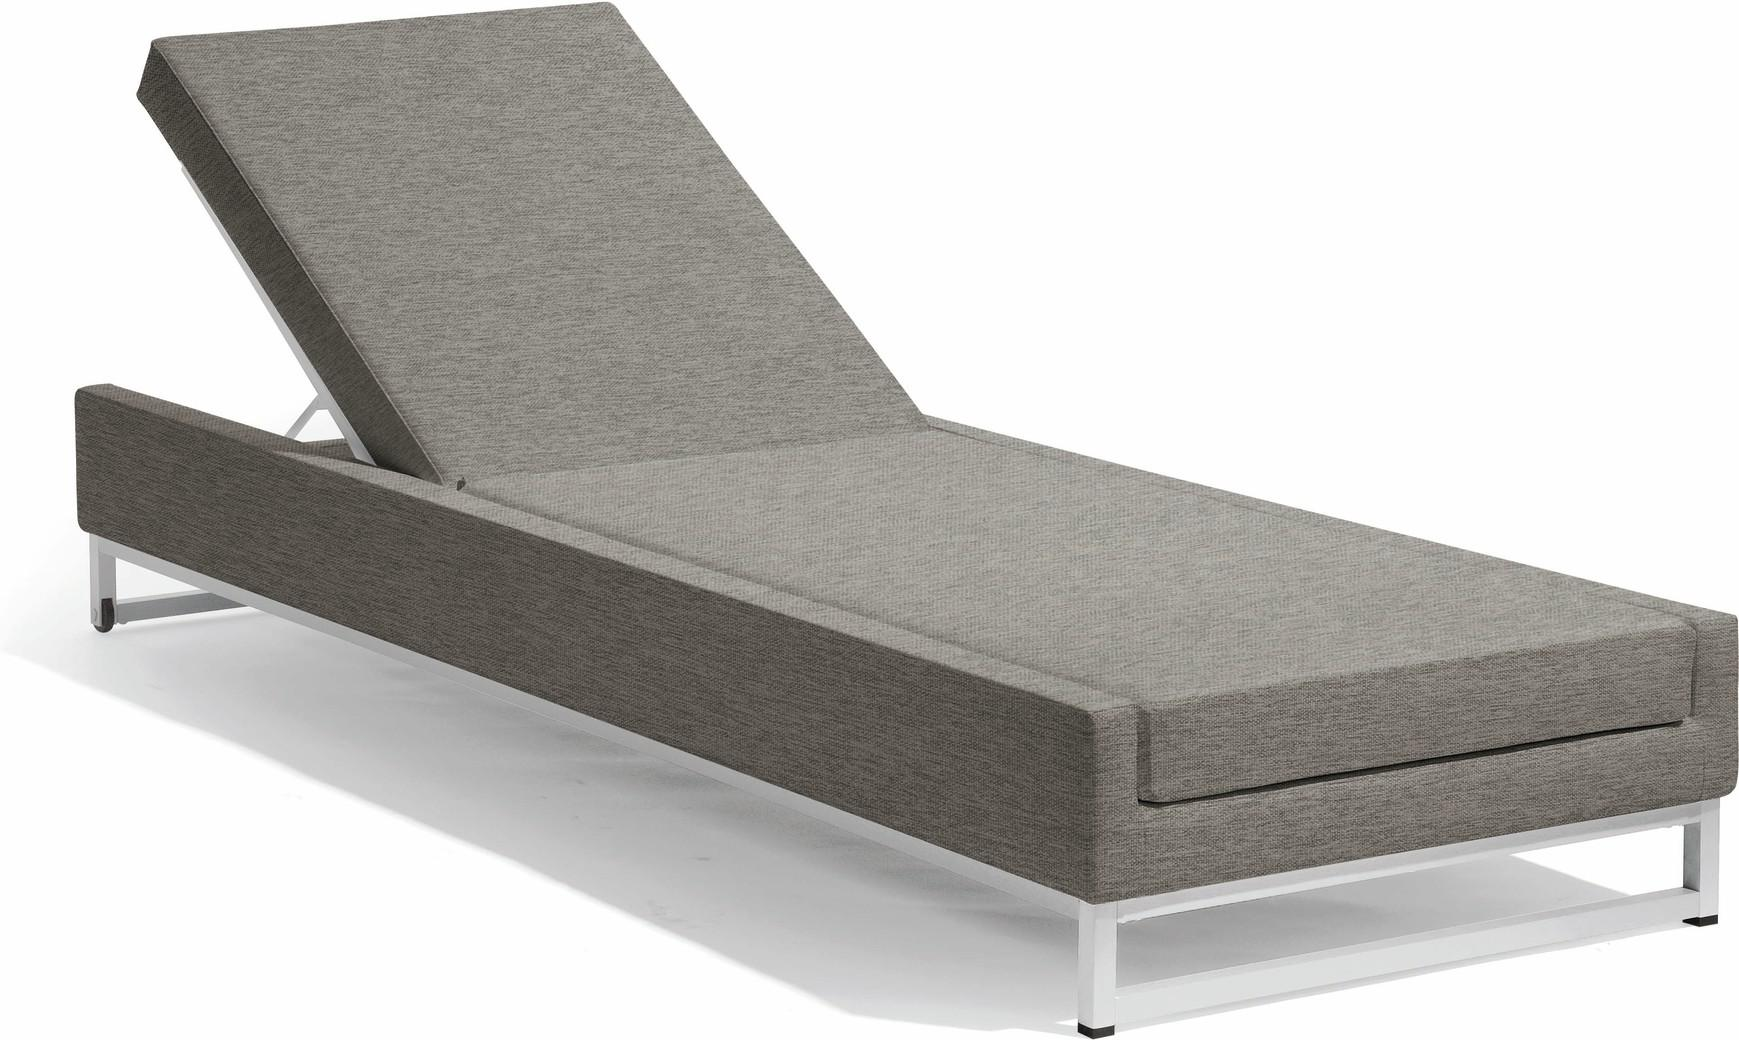 Zendo Lounger - Lotus Sparrow 215